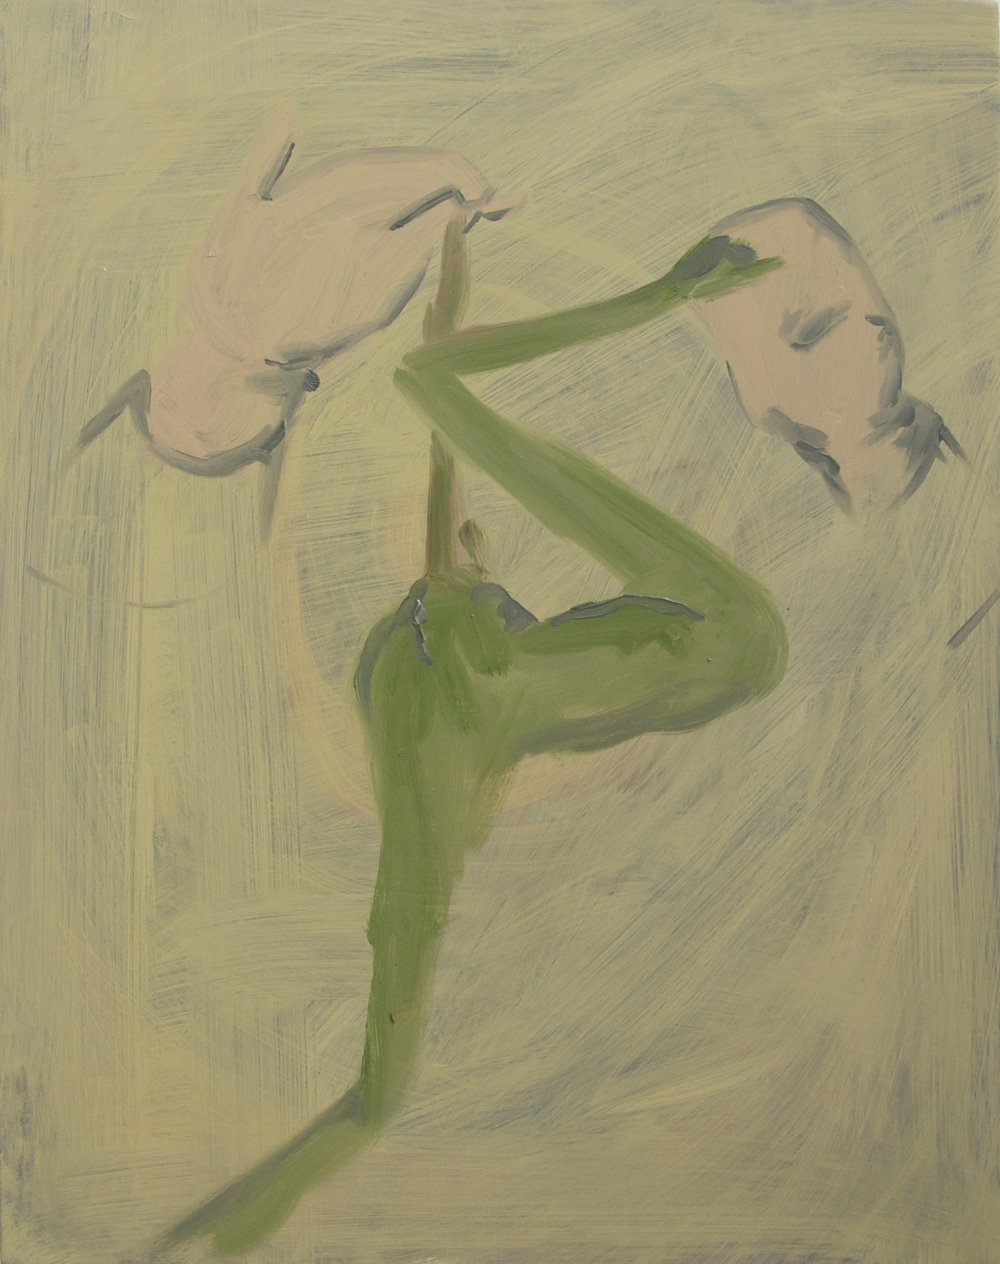 Electric, 2010, Oil on cotton, 50 x 40 cm